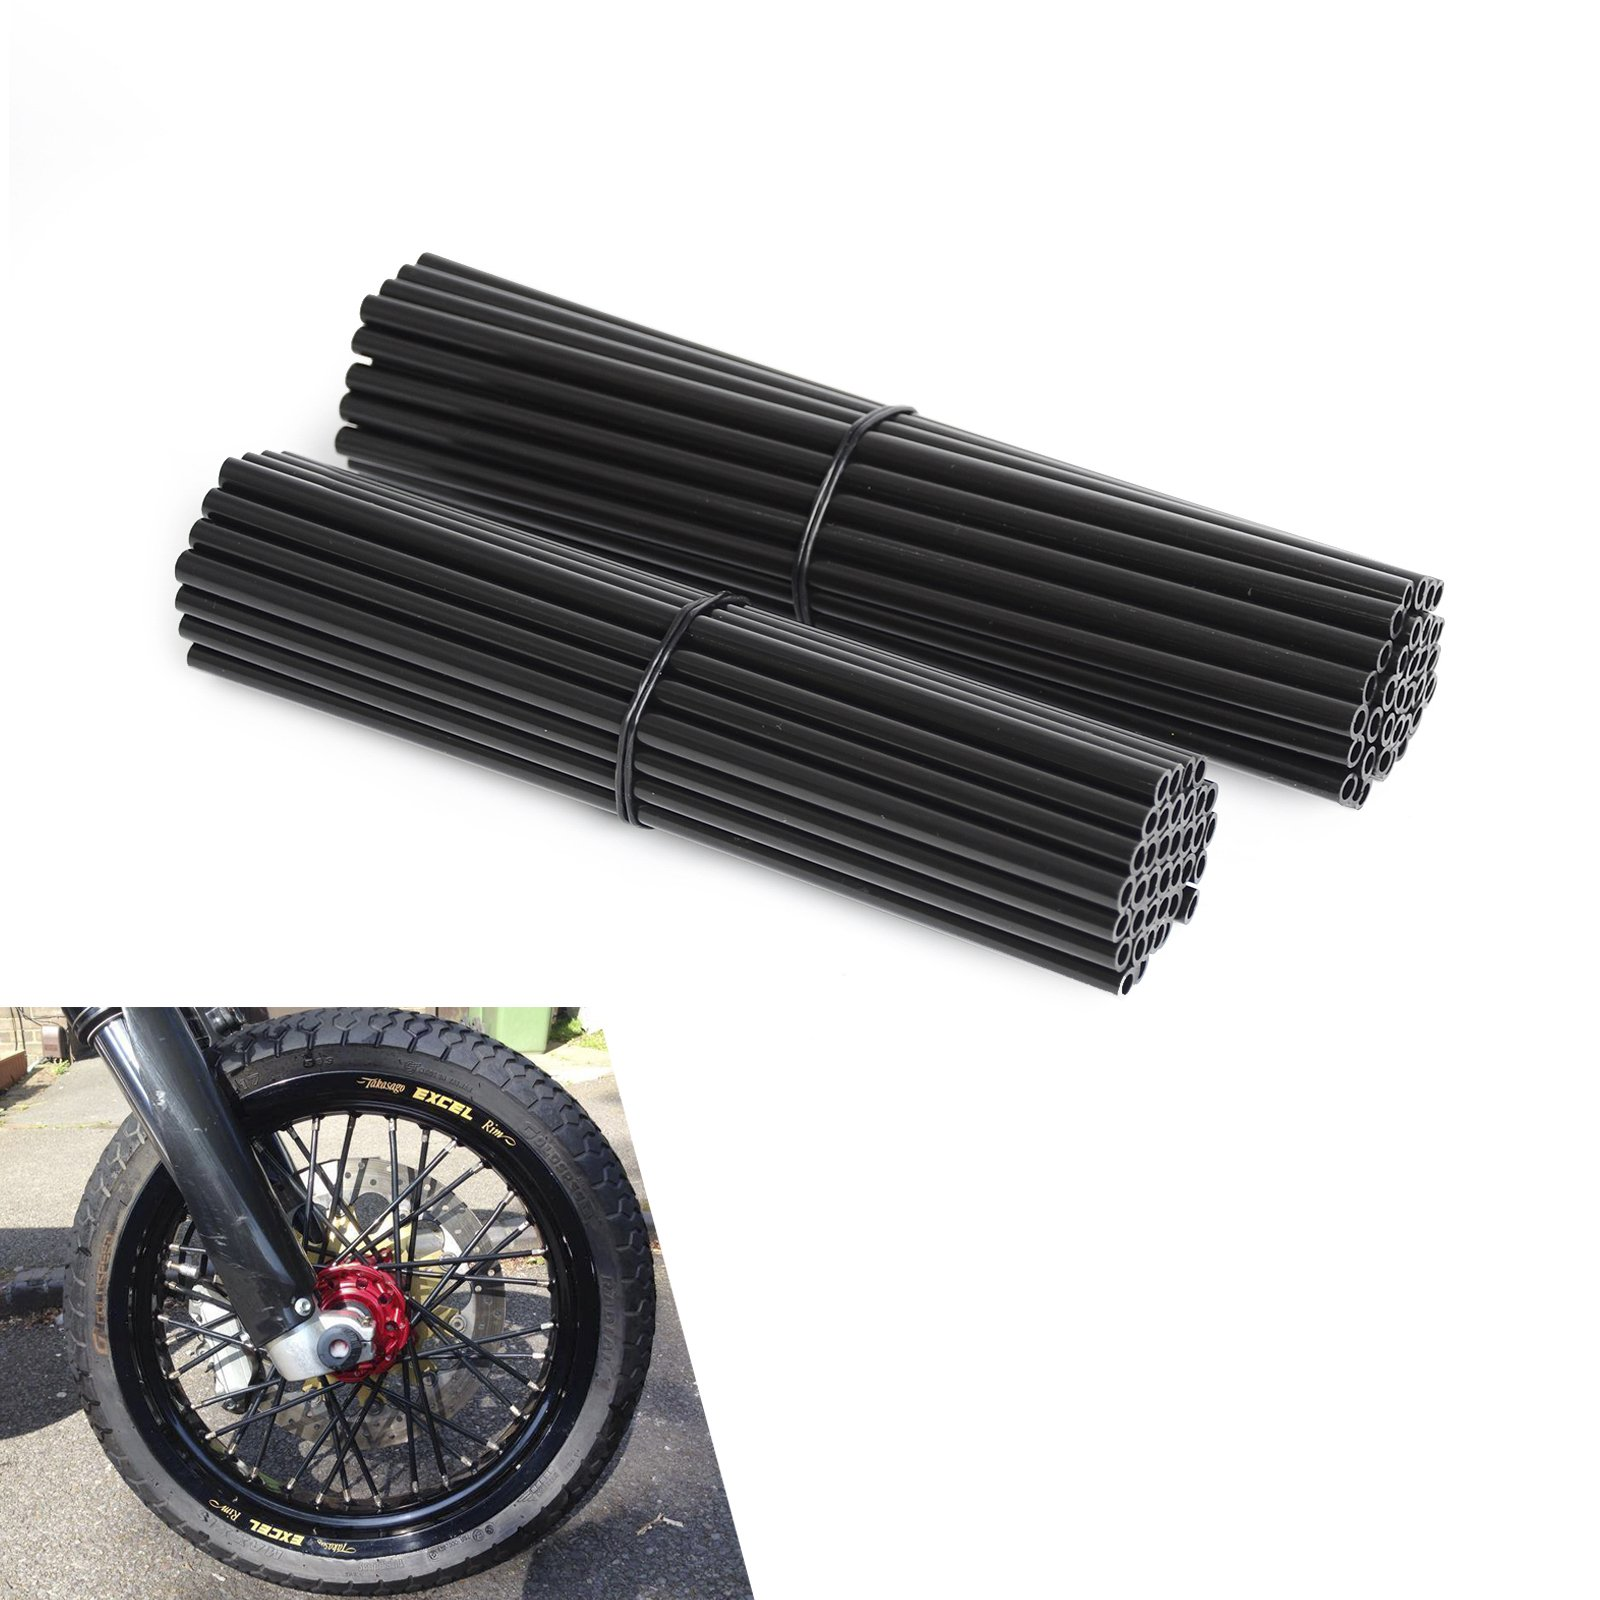 NICECNC Black Spoke Wraps Covers for 17-21 Inches Wheel Dirt Bikes MX Enduro Supermoto